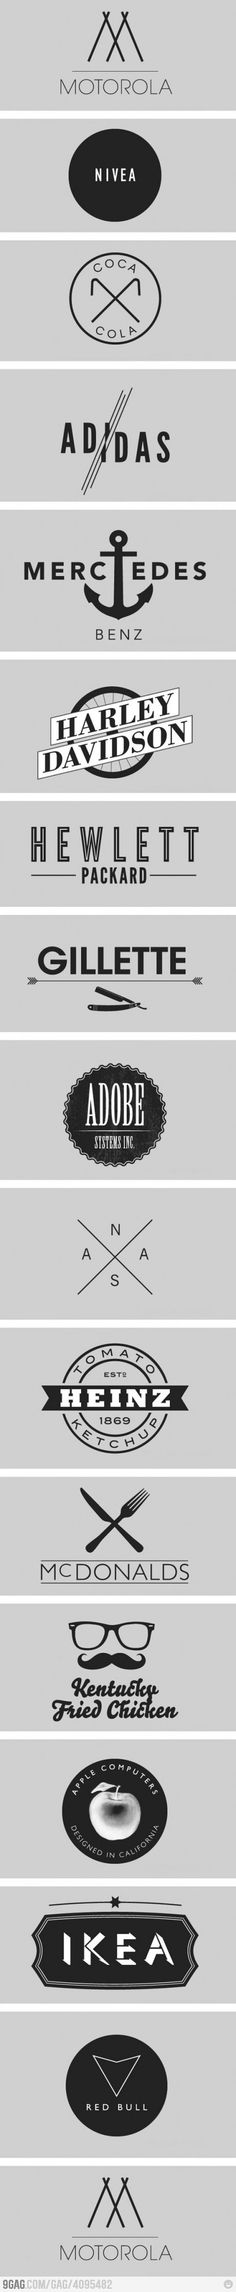 Minimalist Logos, i love the black and white logo and how they are all different from each other.